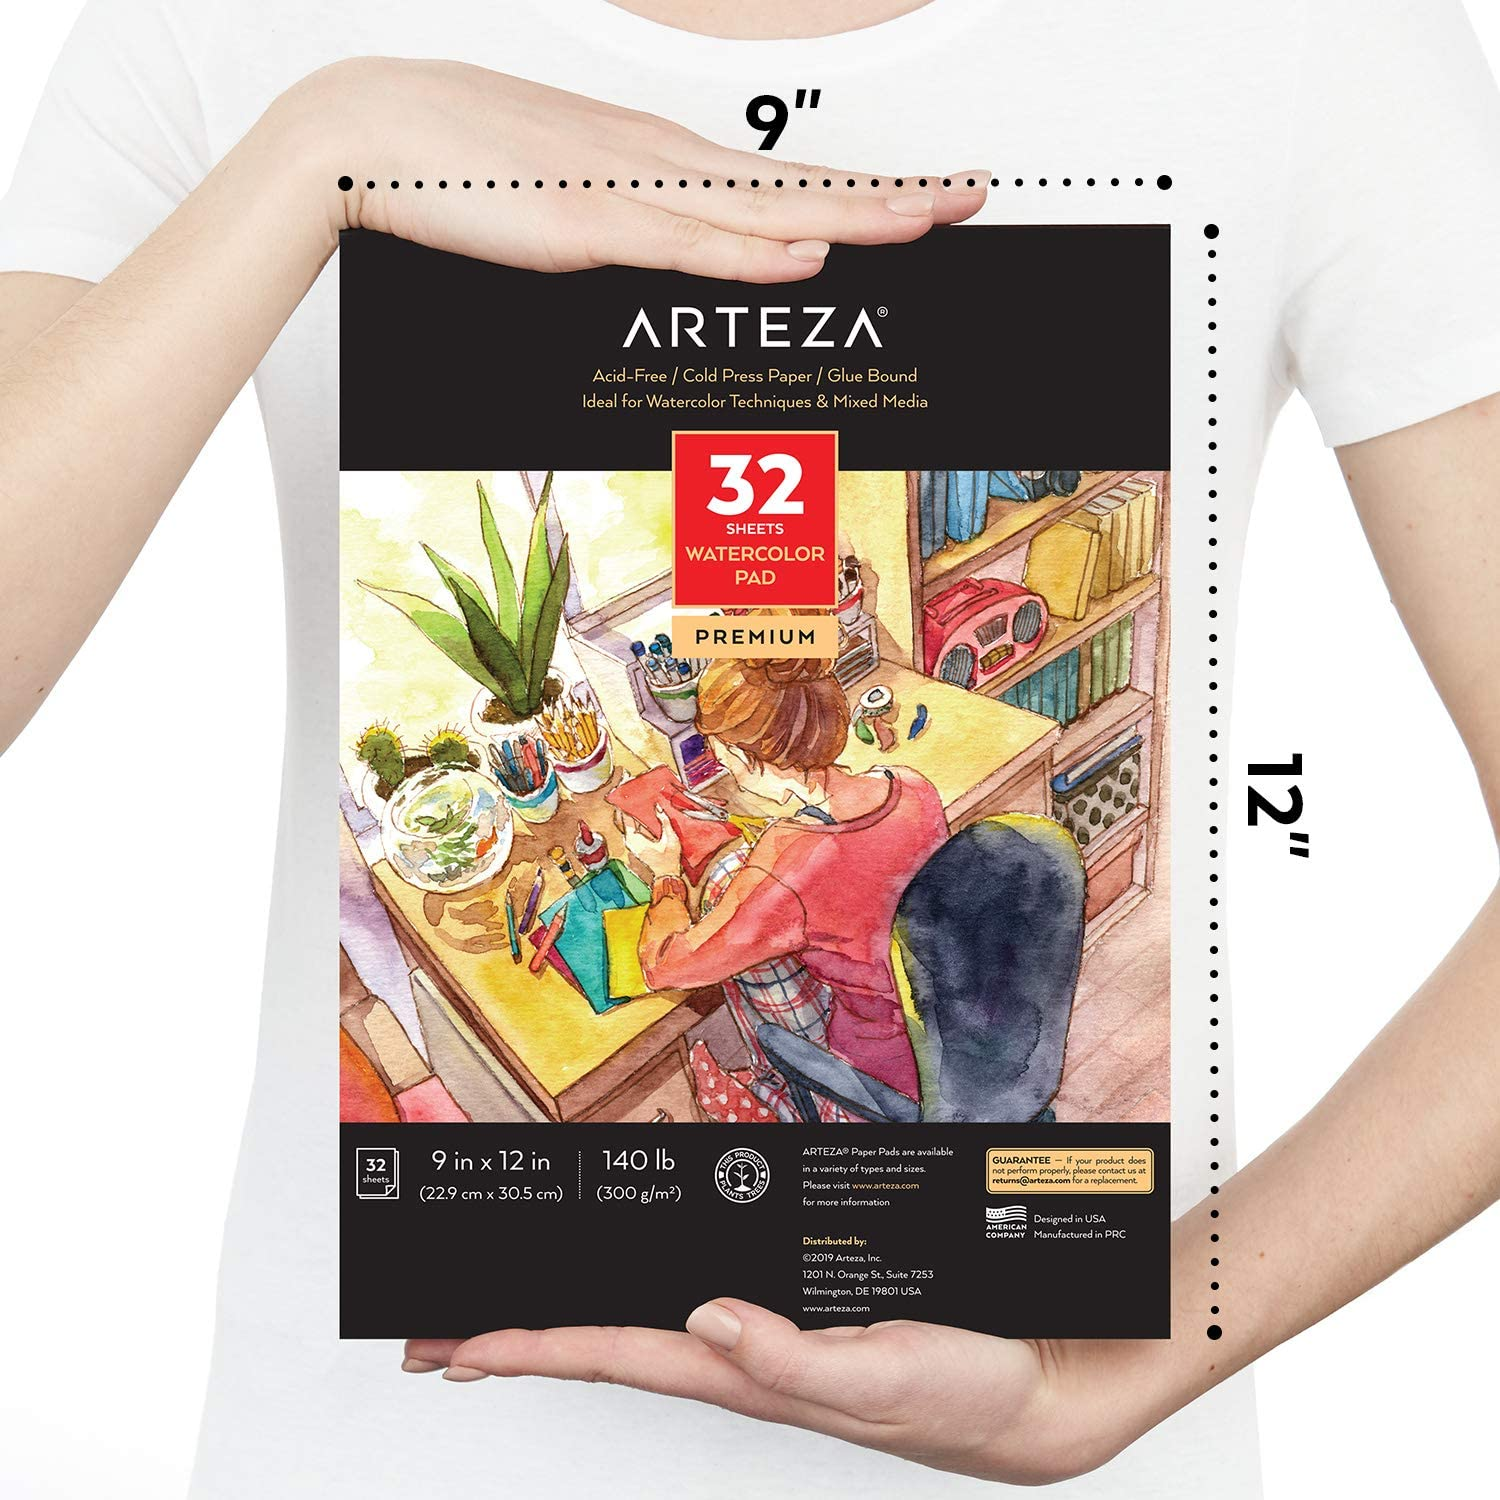 ARTEZA Watercolor Paper 9x12 Inch, Pack of 2, 64 Sheets (140lb/300gsm), Cold Pressed Art Sketchbook Pad for Painting & Drawing, Wet, Mixed Media: Arts, Crafts & Sewing